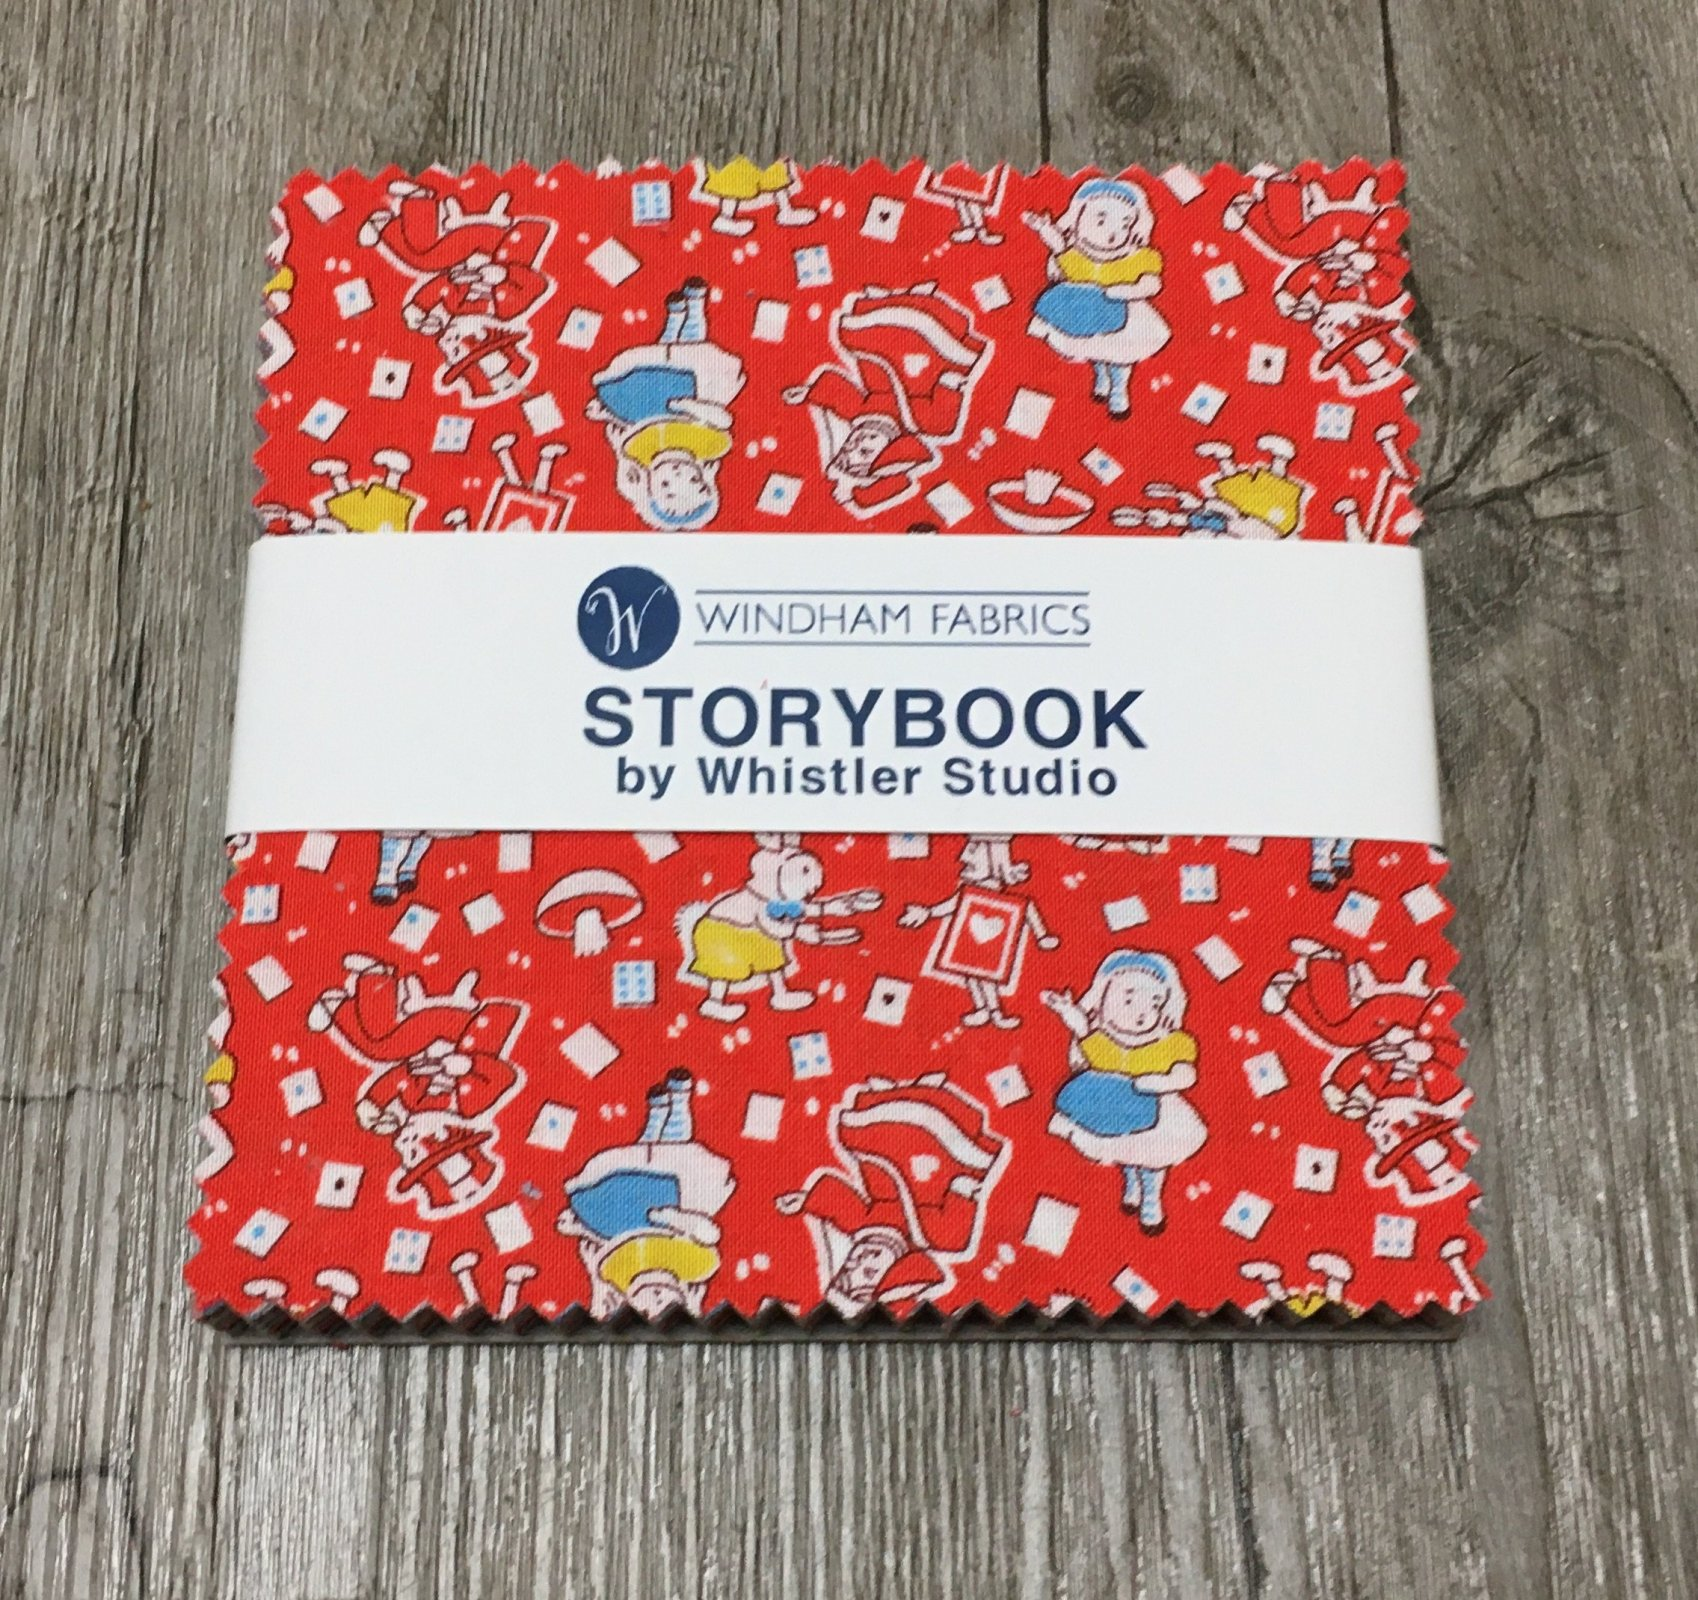 5 squares Storybook by Windham Fabrics